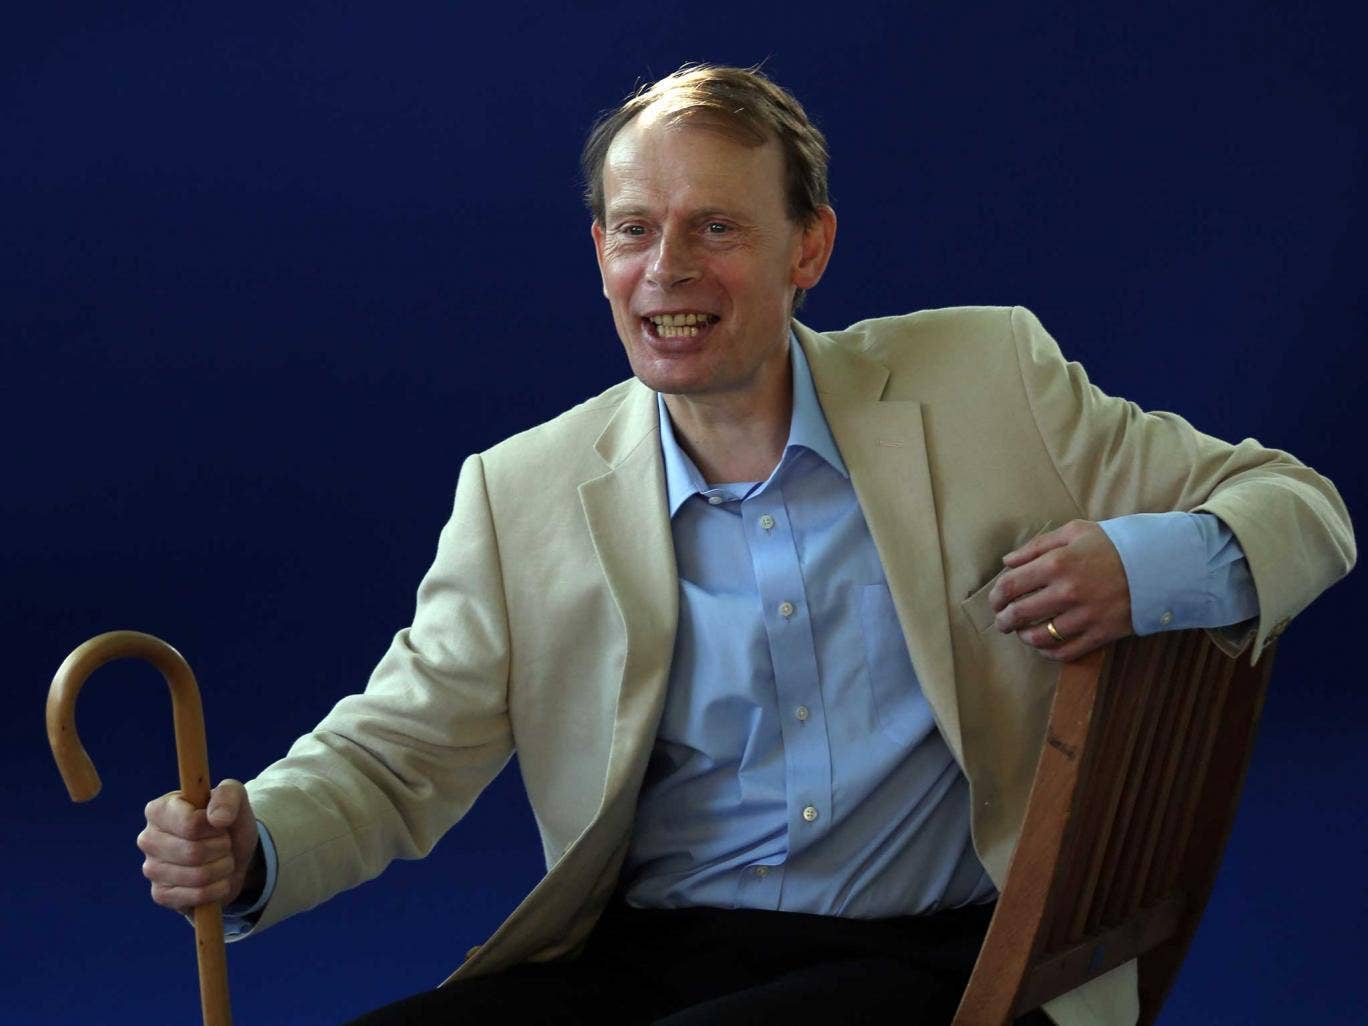 Andrew Marr makes his first appearance at a public event since he suffered a stroke